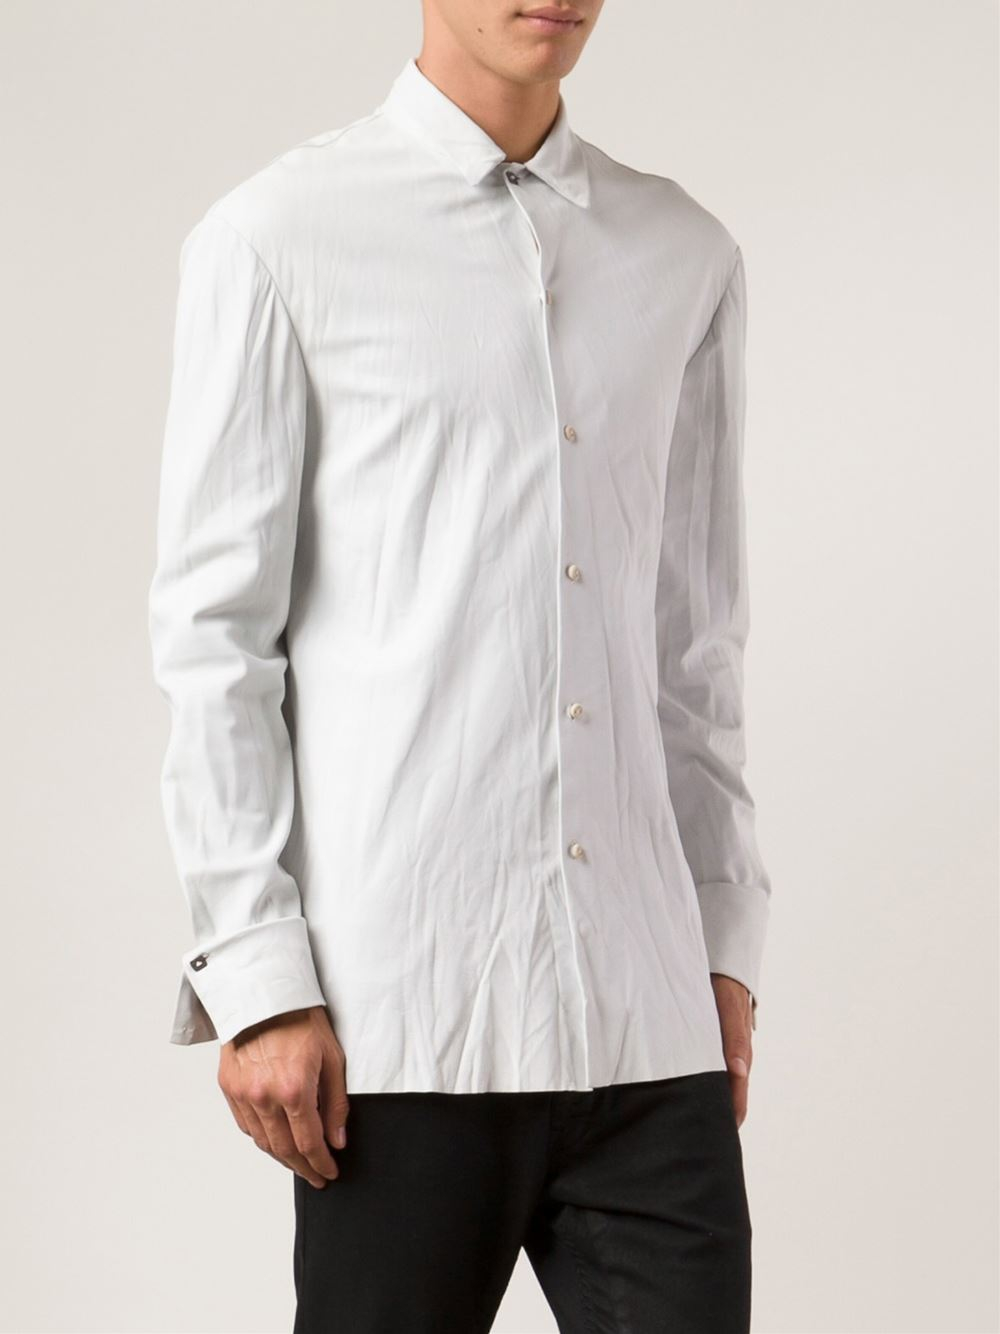 Ma+ Leather Shirt Jacket in White for Men - Lyst